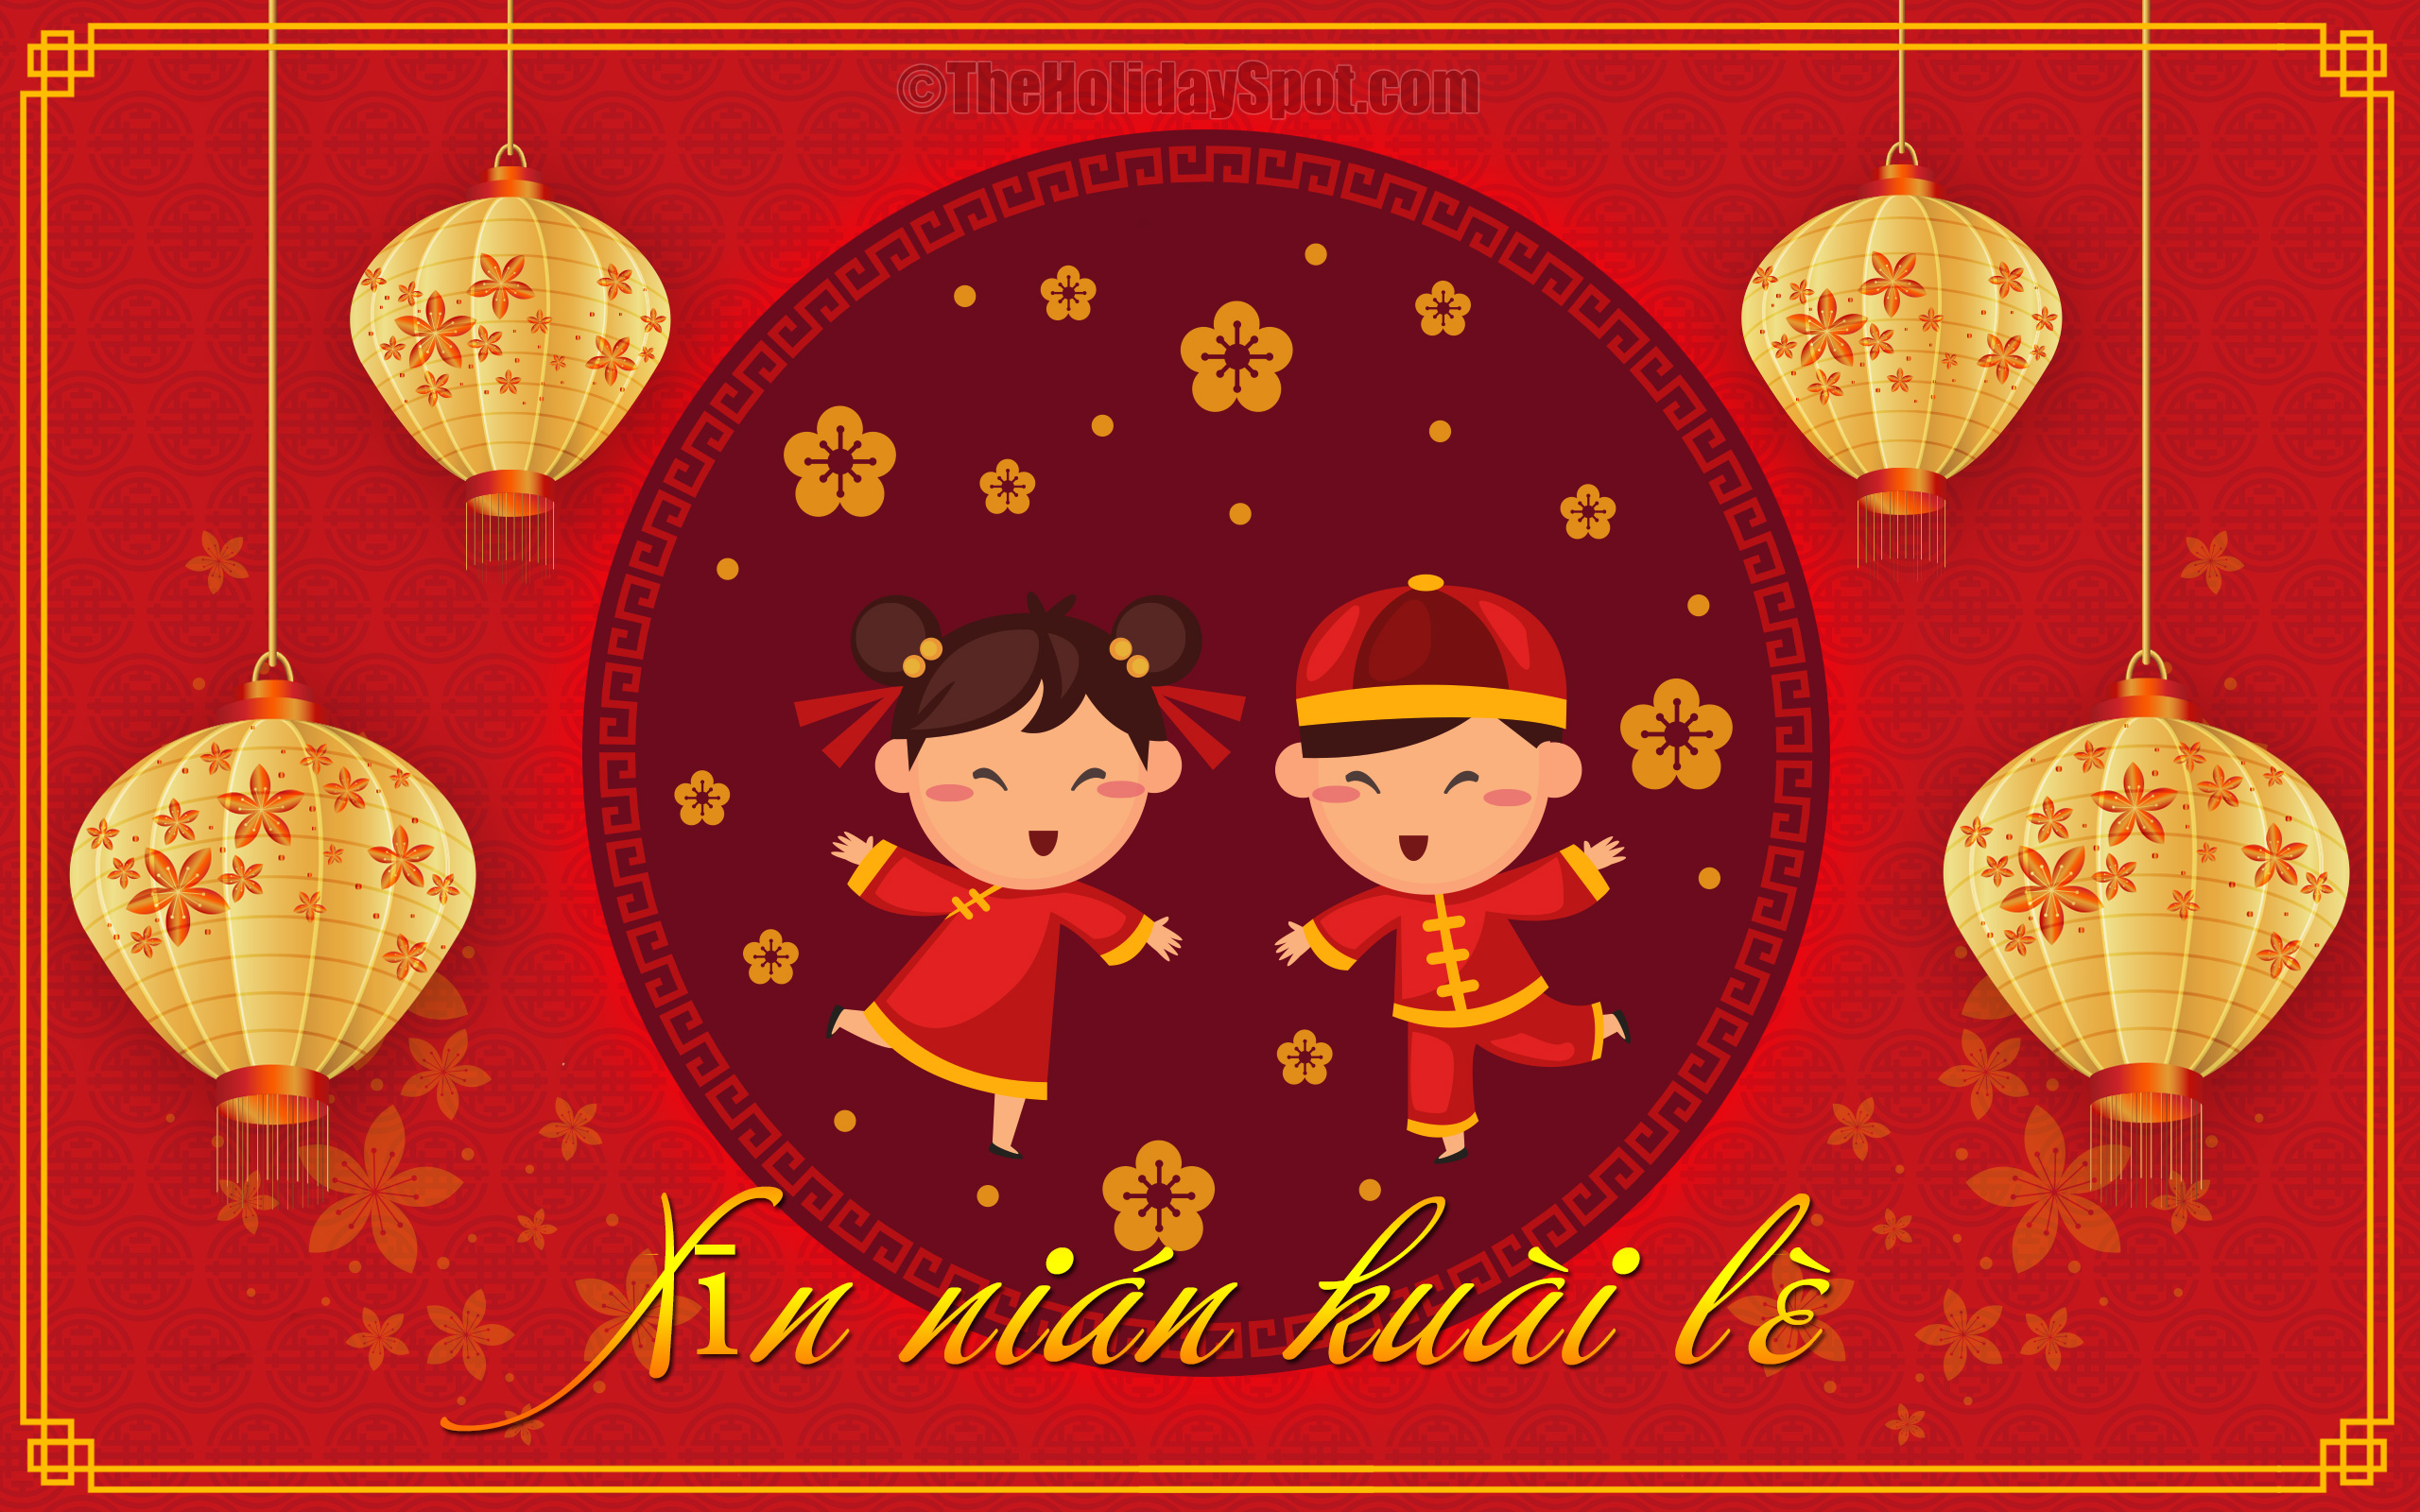 chinese new year wallpaper with happy new year wishes